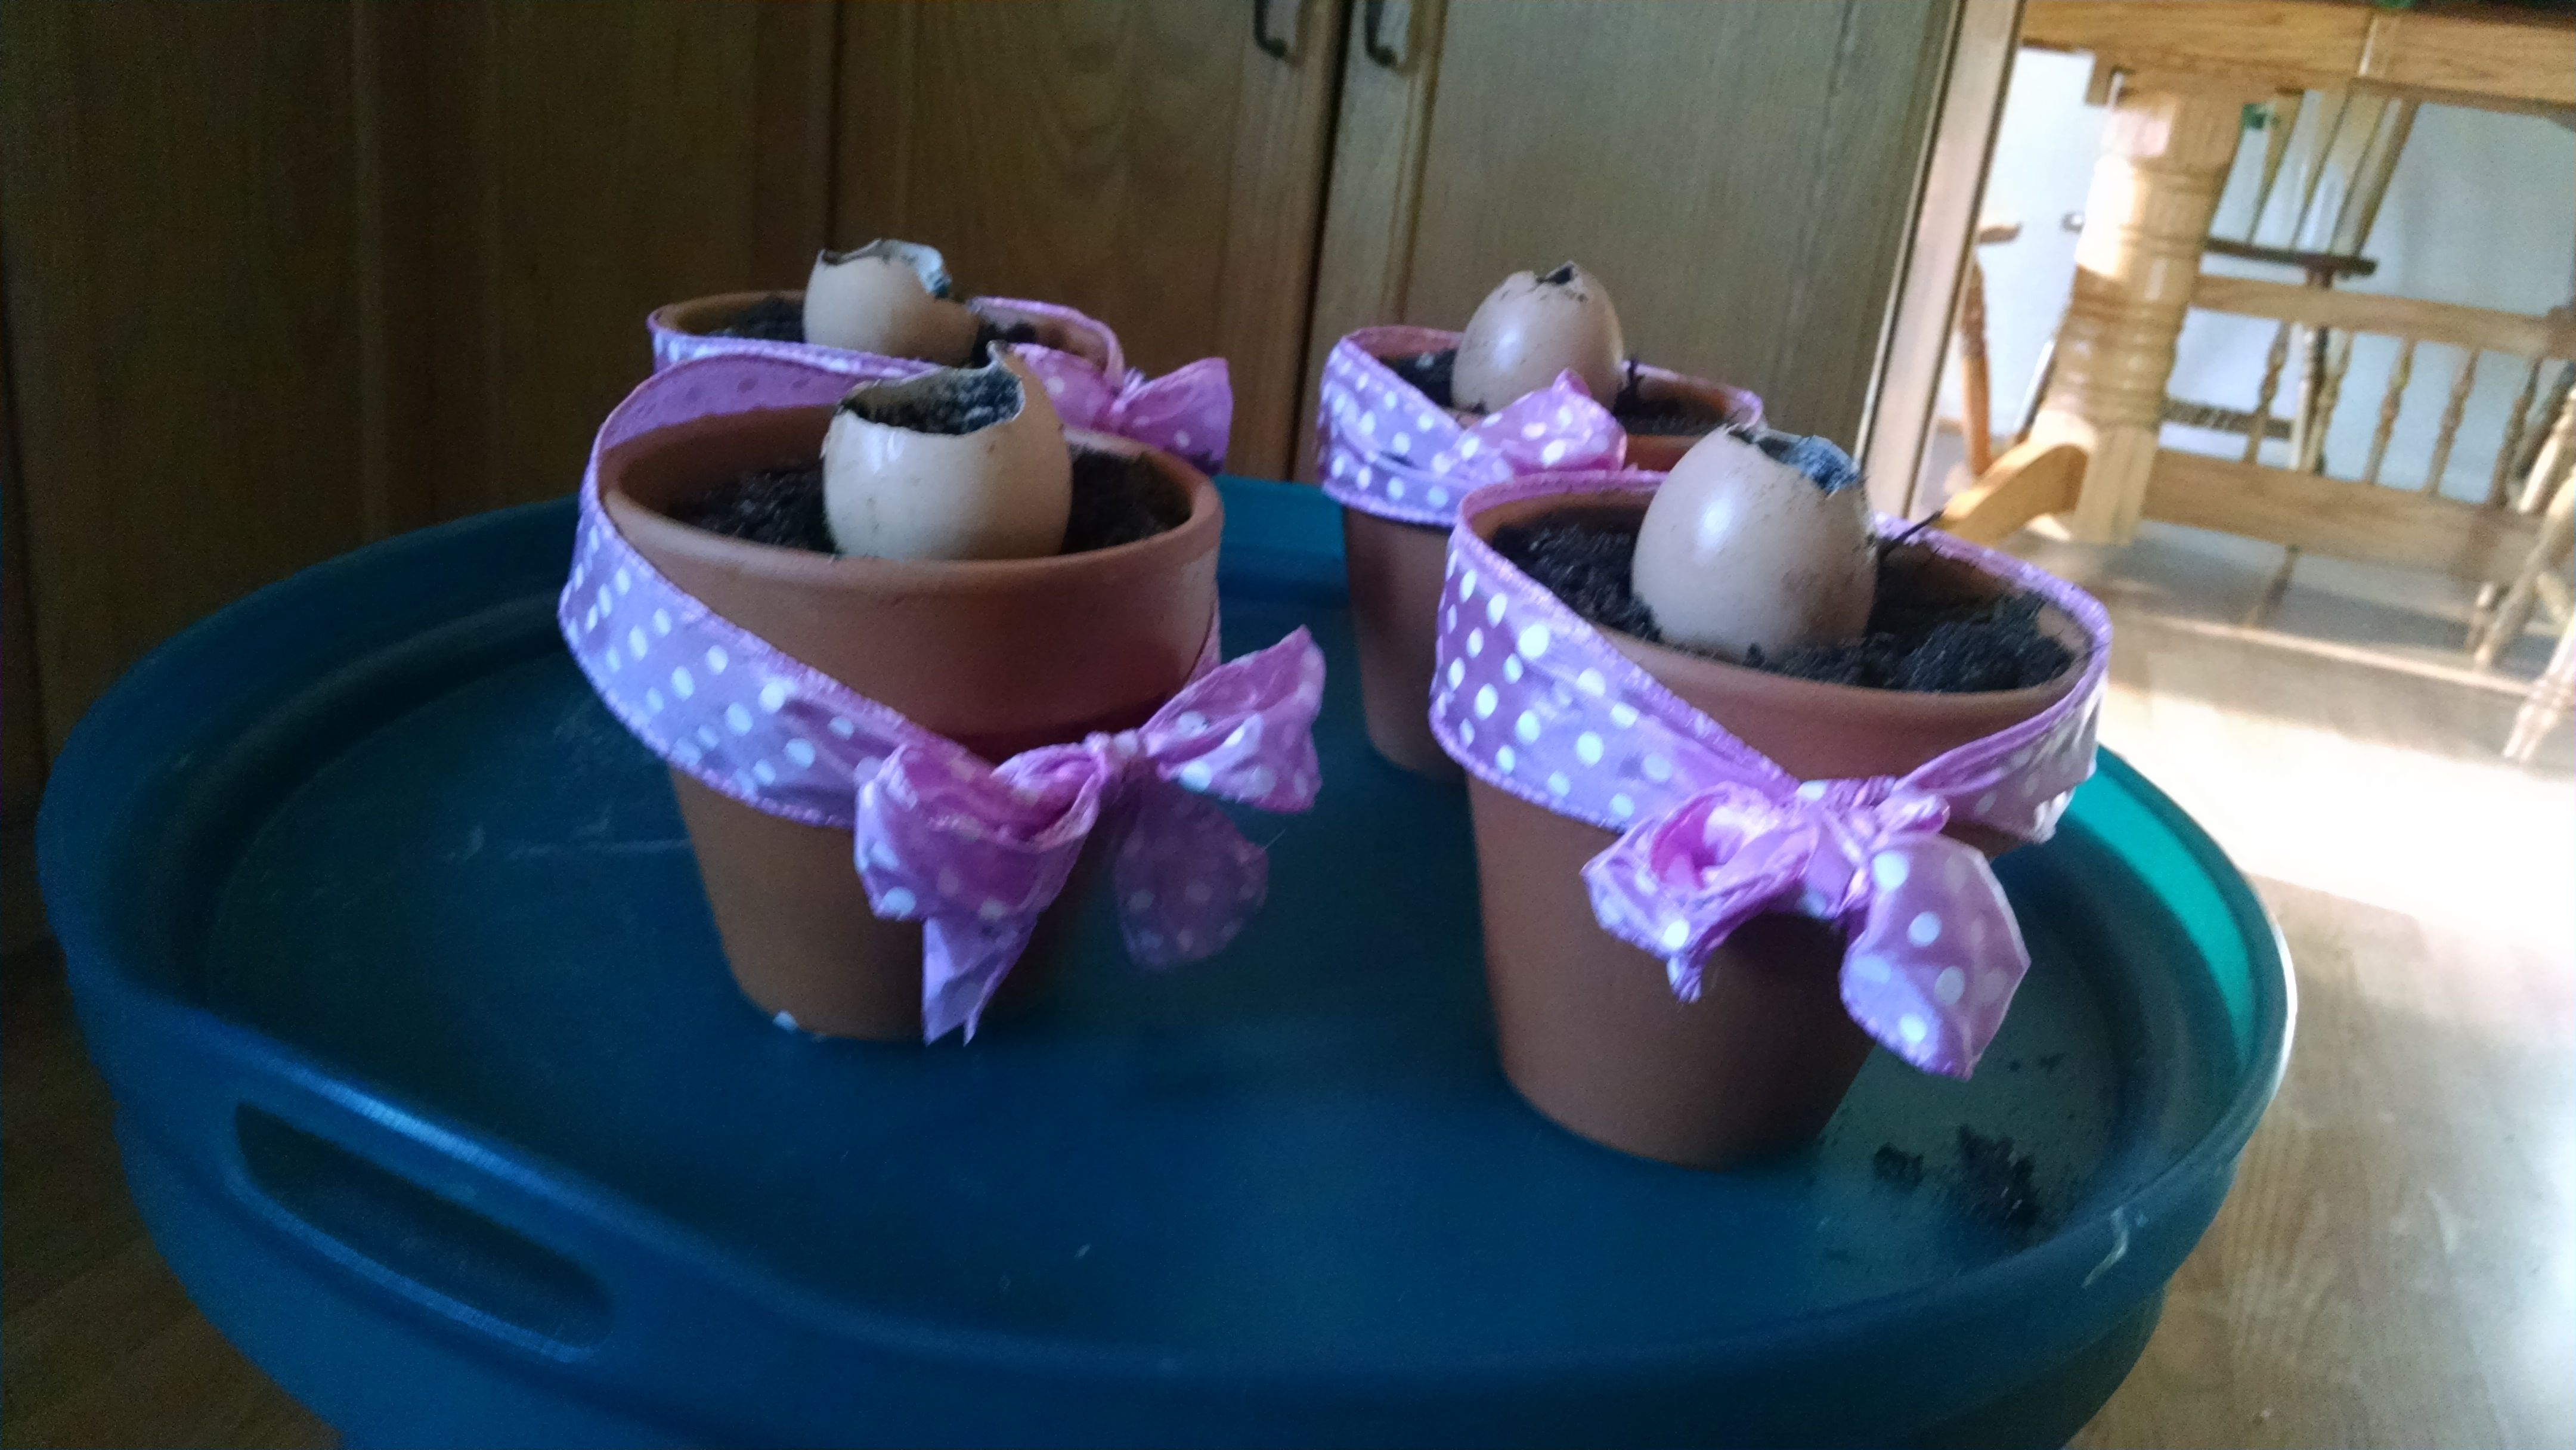 Another view of the bean sprout party favors, this is